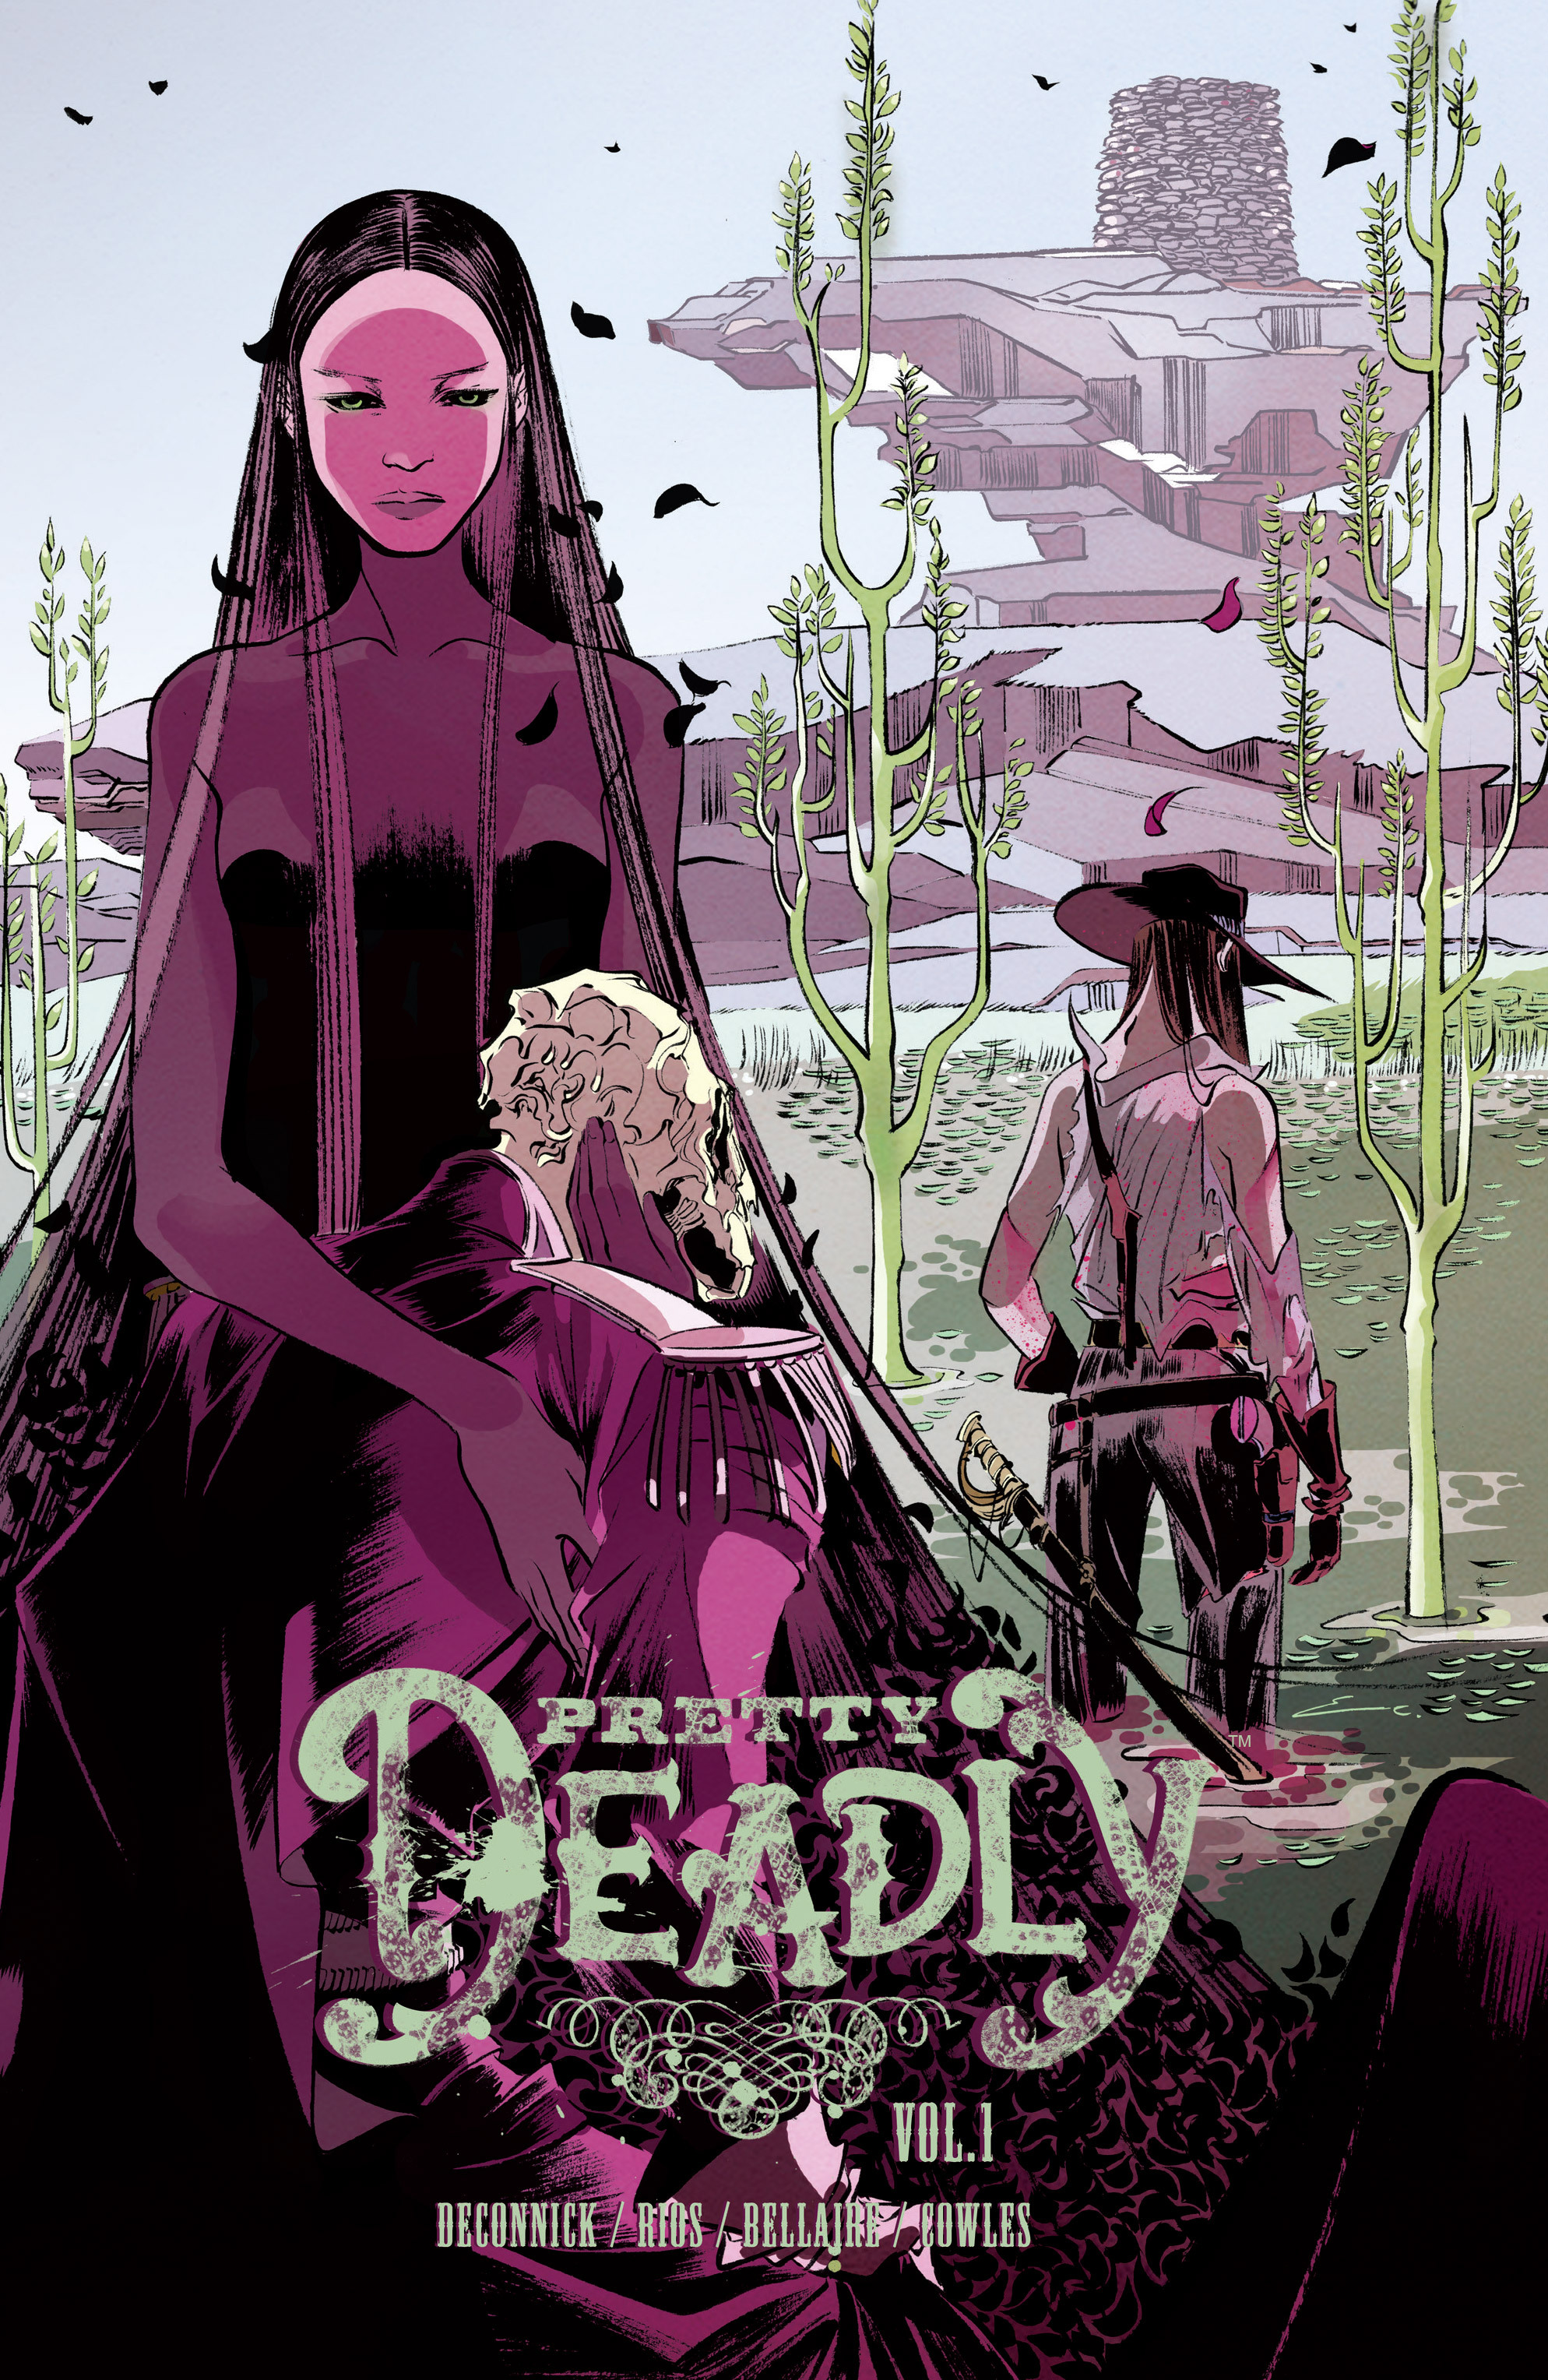 Pretty Deadly     Volume 1: The Shrike   by Kelly Sue DeConnick, Emma Rios and Jordie Bellaire